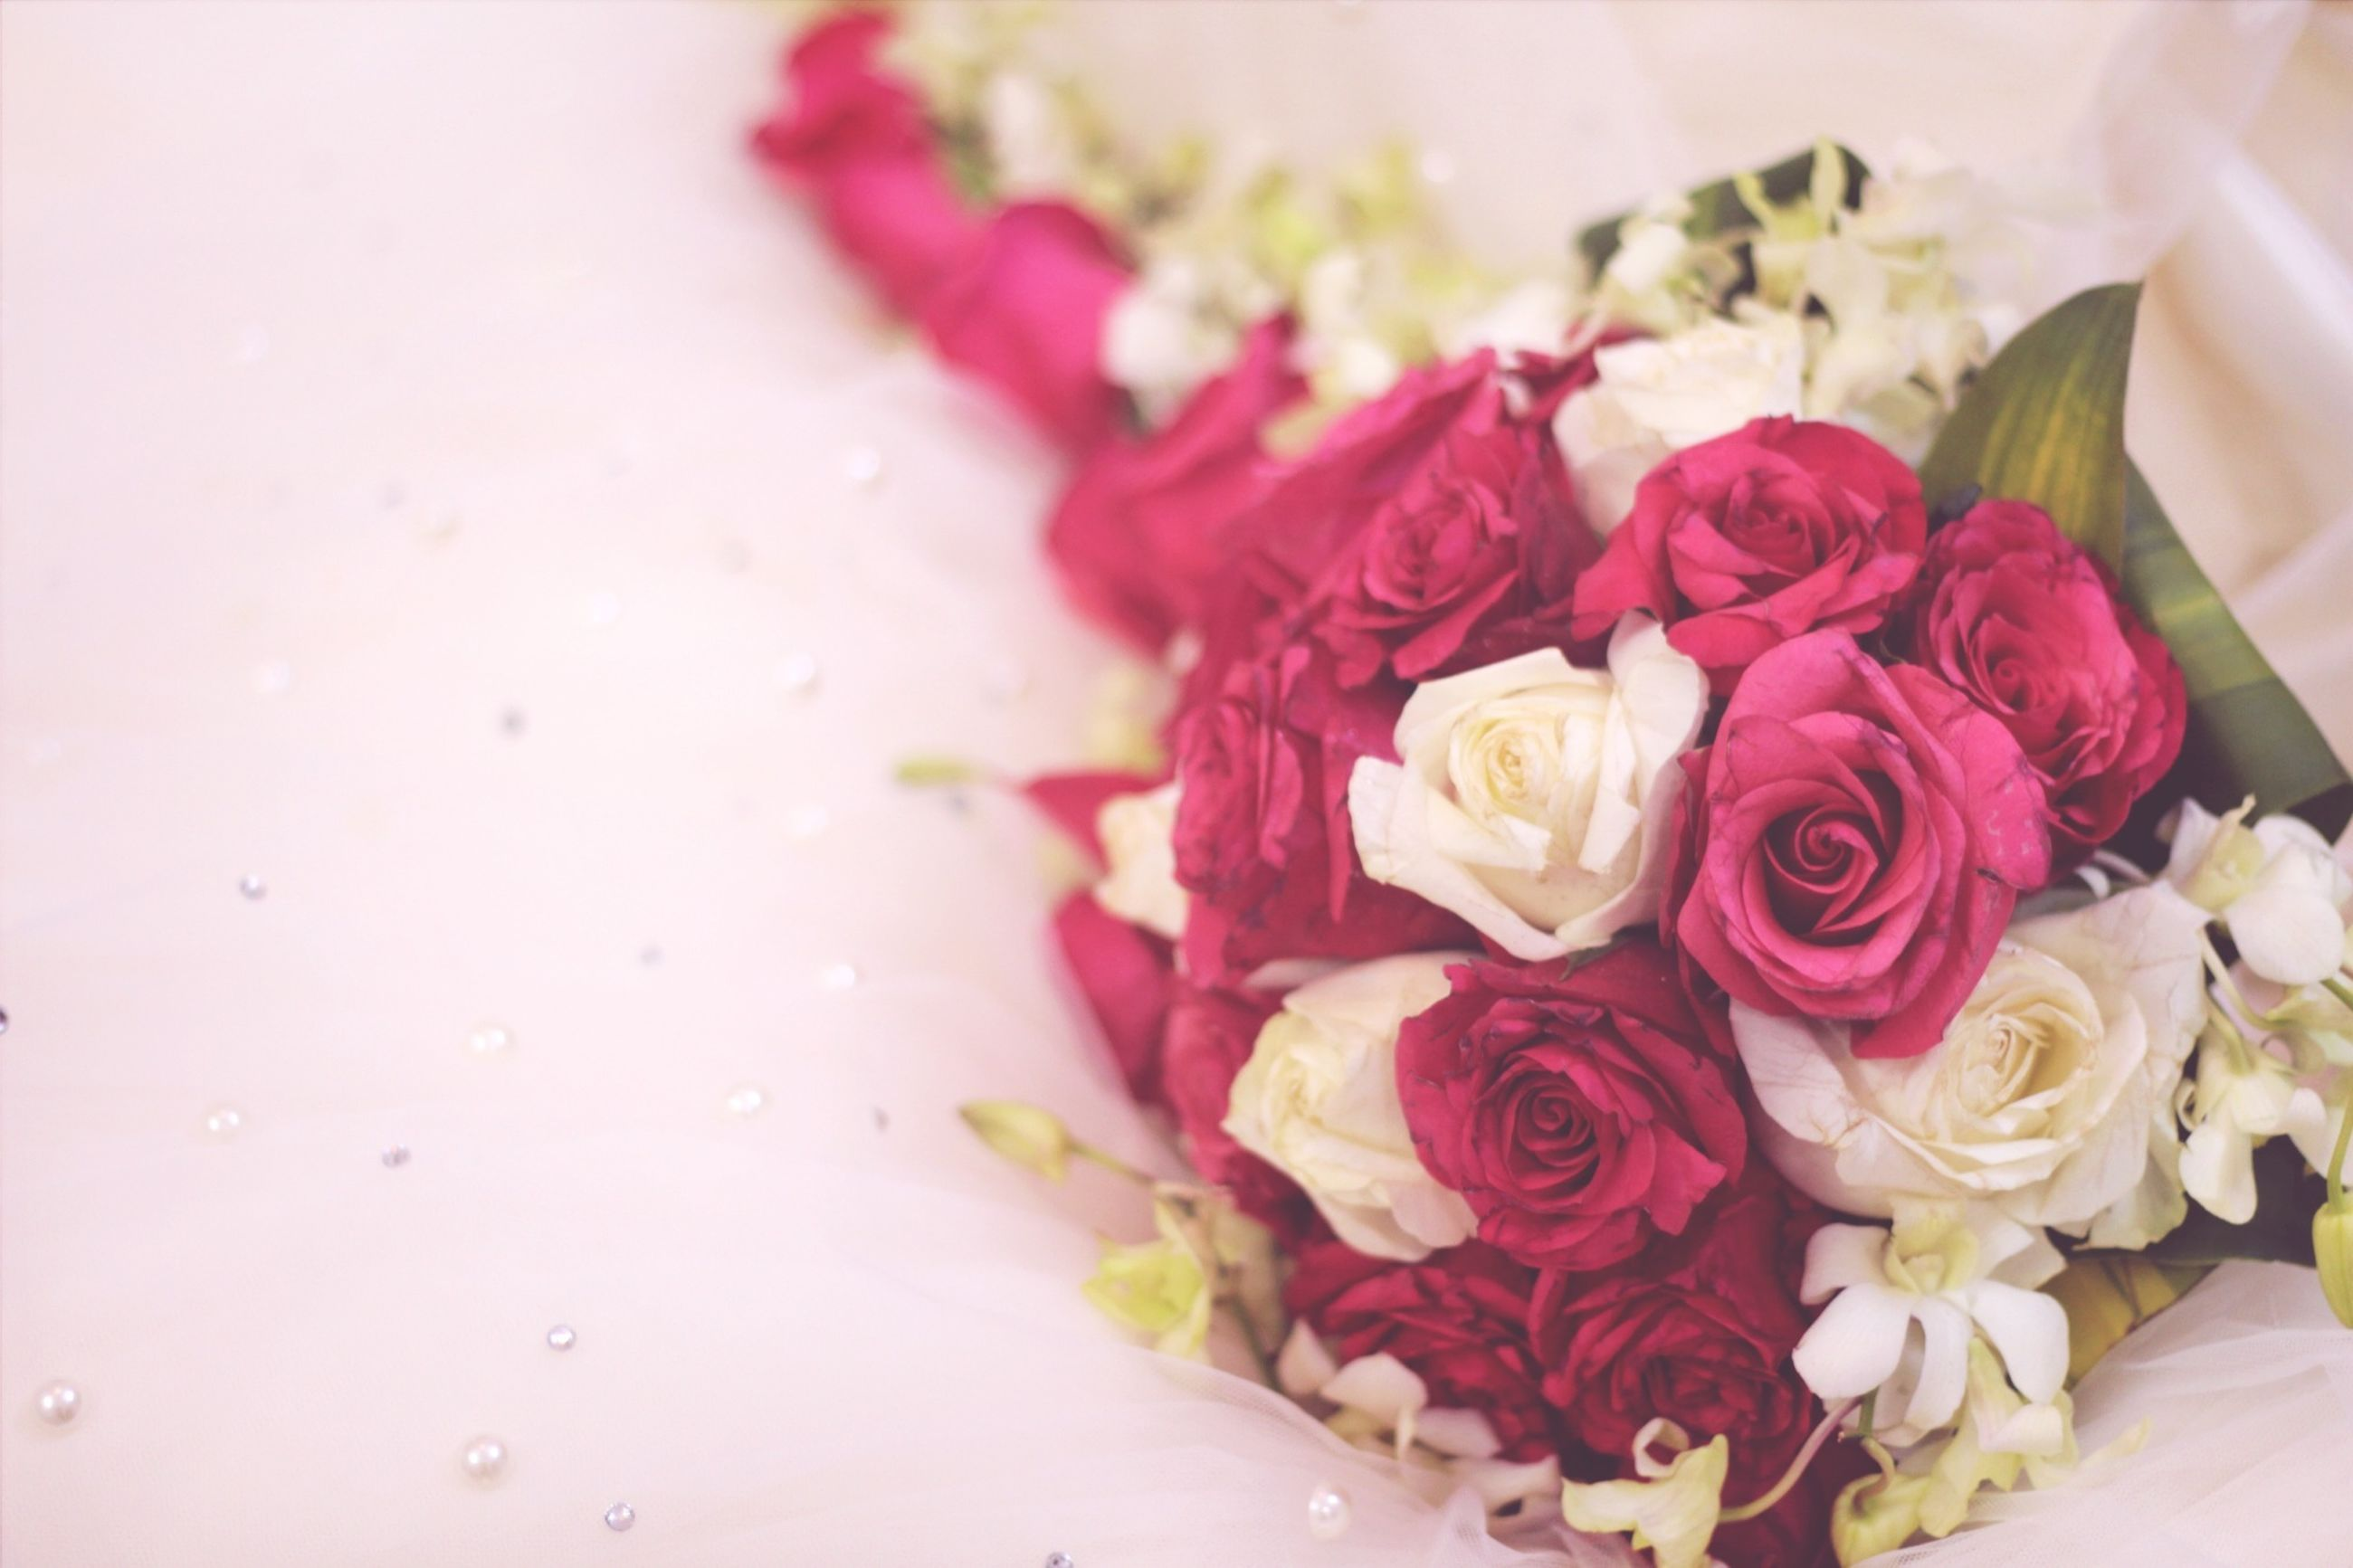 flower, indoors, freshness, petal, rose - flower, close-up, bouquet, fragility, flower head, bunch of flowers, vase, table, rose, still life, high angle view, decoration, beauty in nature, no people, focus on foreground, pink color